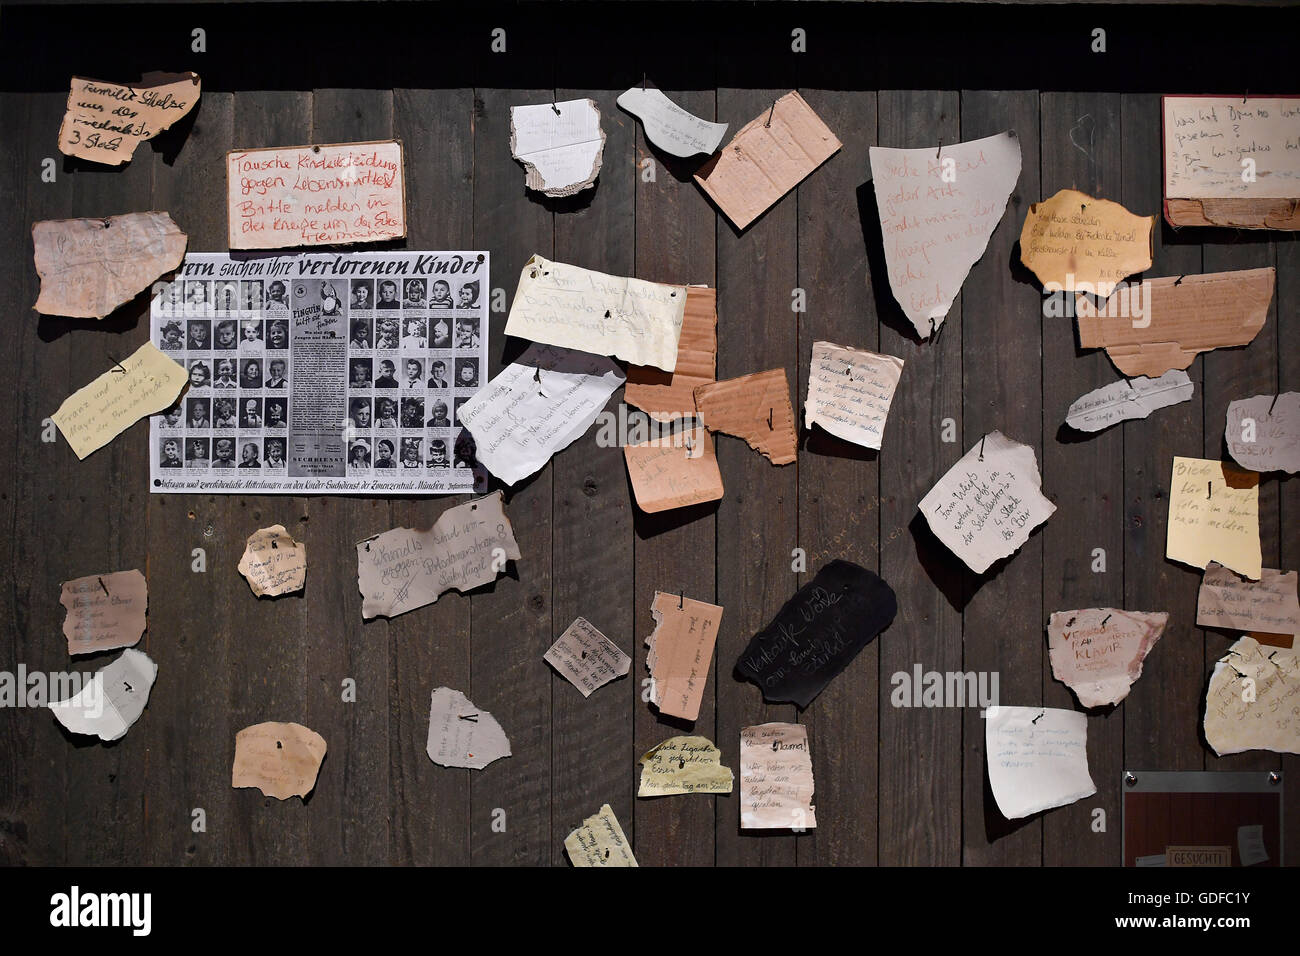 Search ads, list with names of missing relatives, exhibit, museum, interactive exhibition, 'The Story of Berlin', - Stock Image